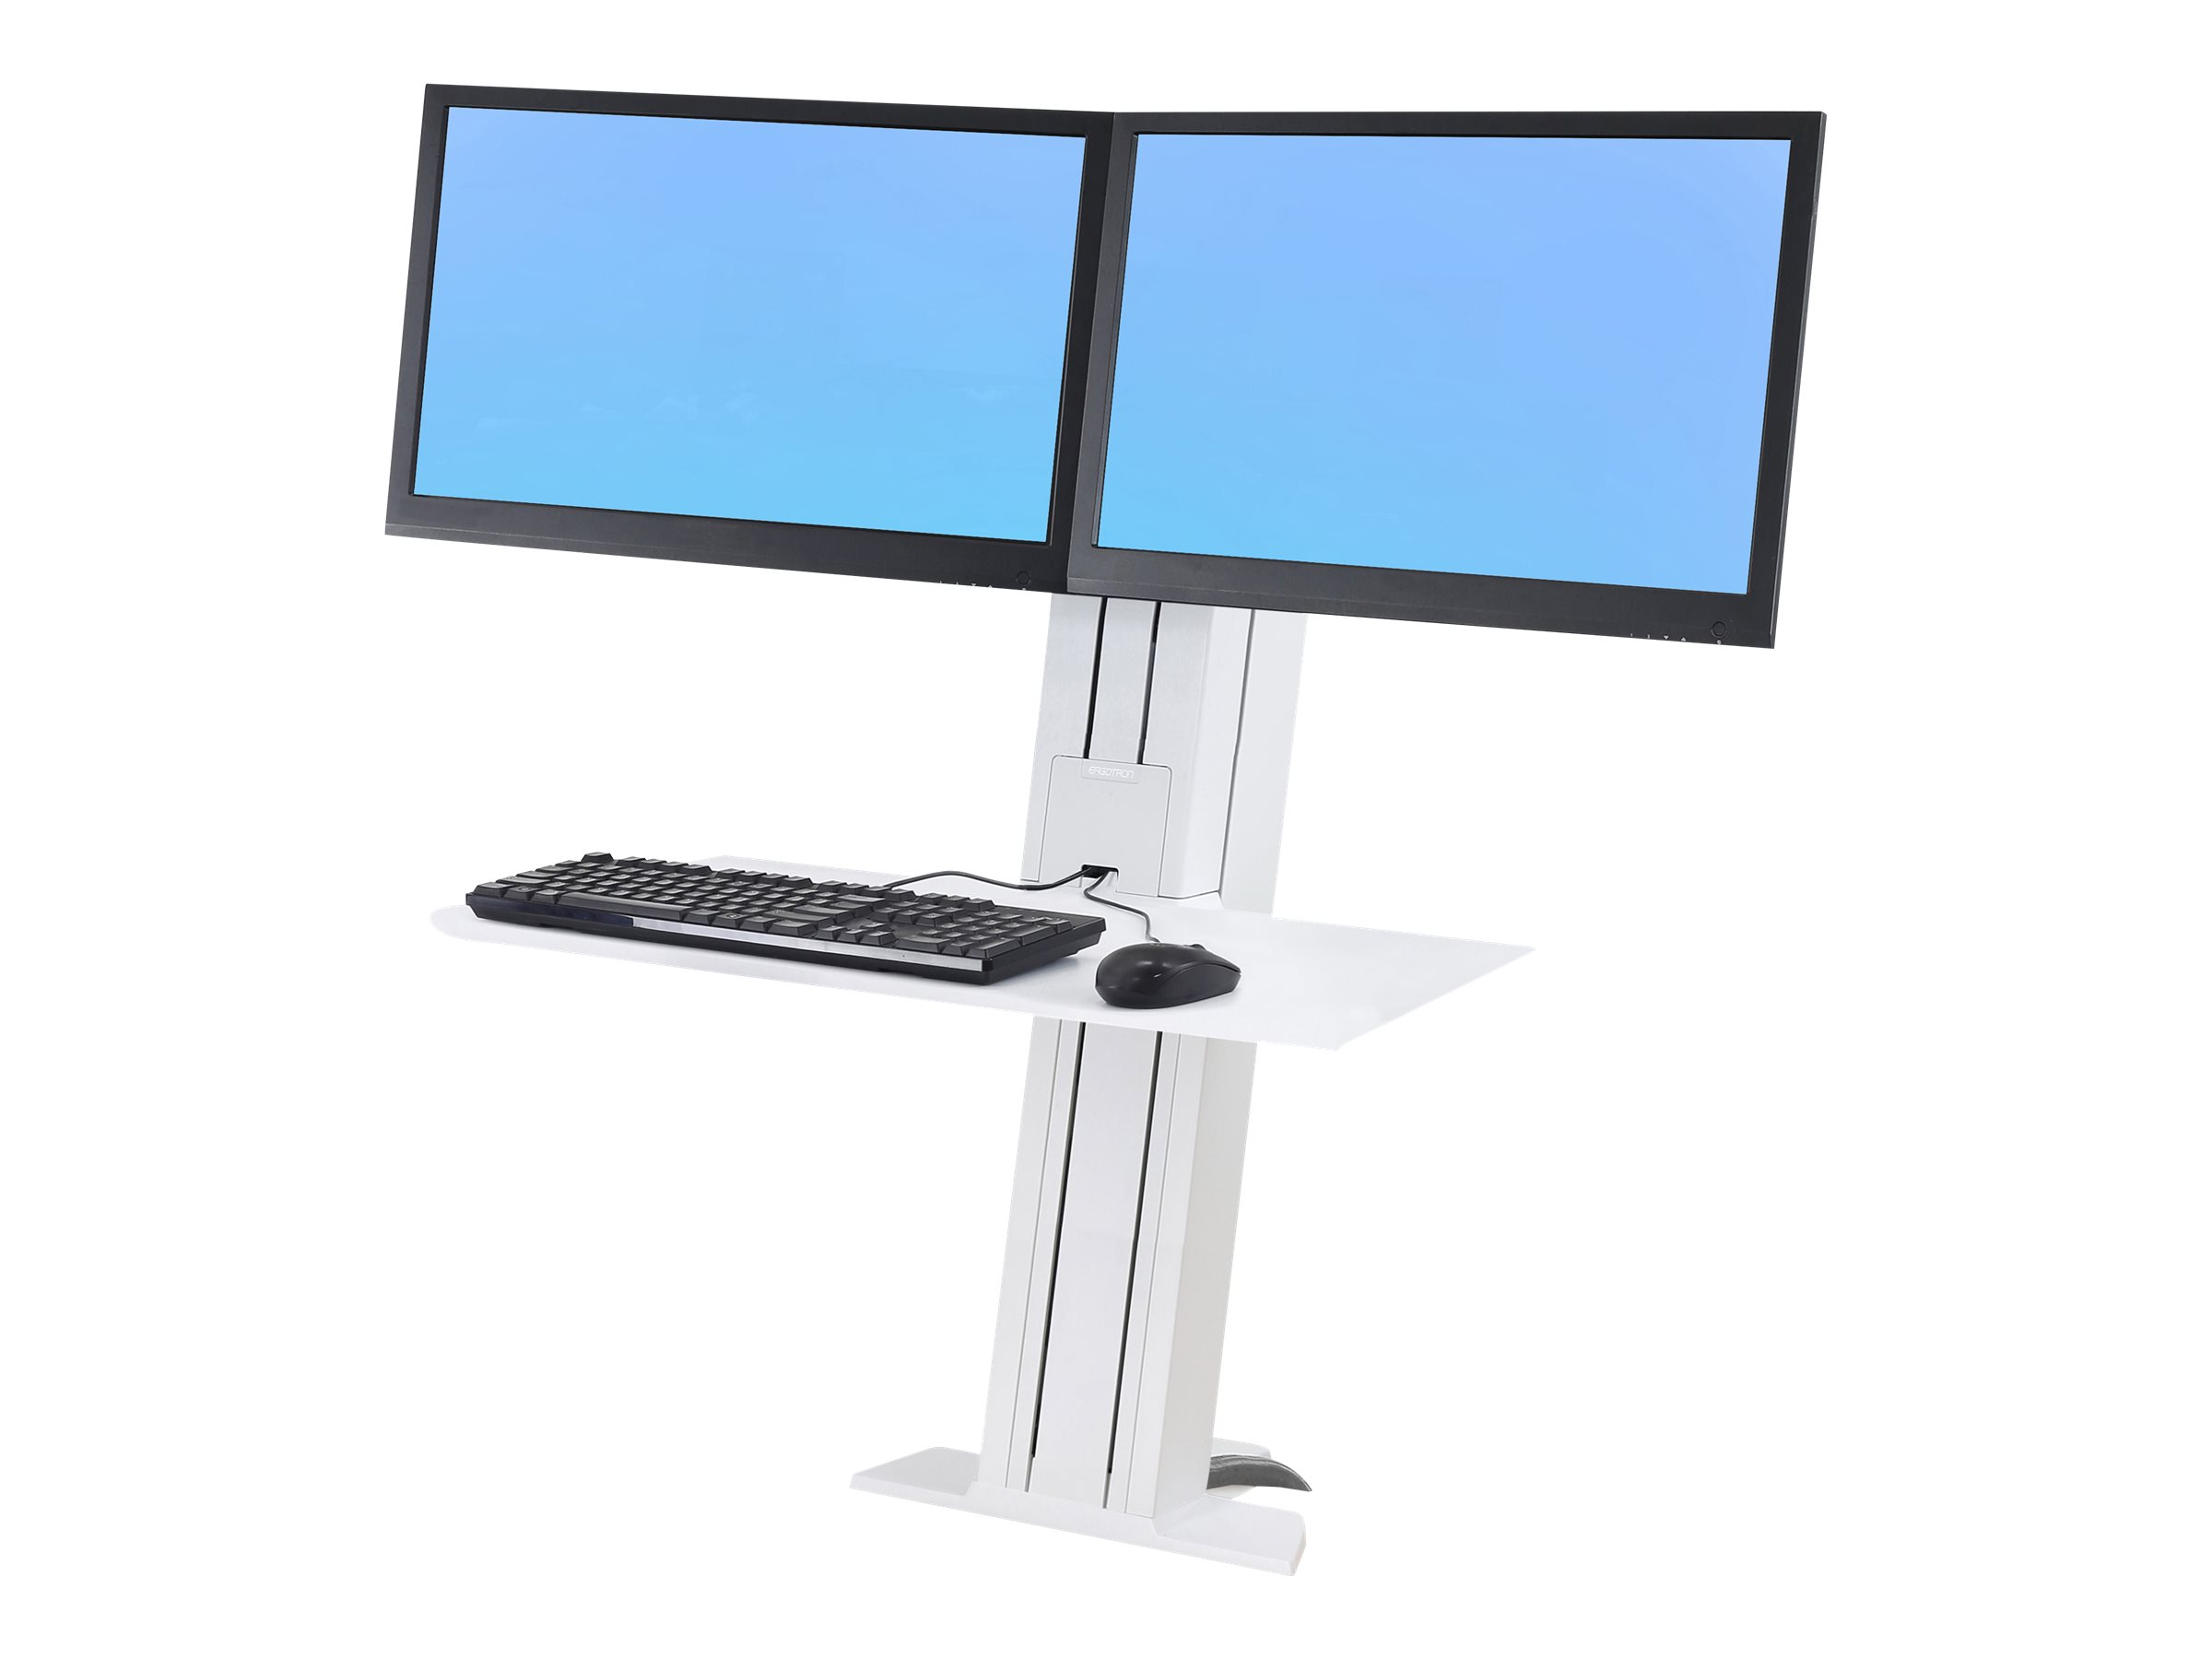 Ergotron WorkFit-SR Dual Sit-Stand Workstation - stand